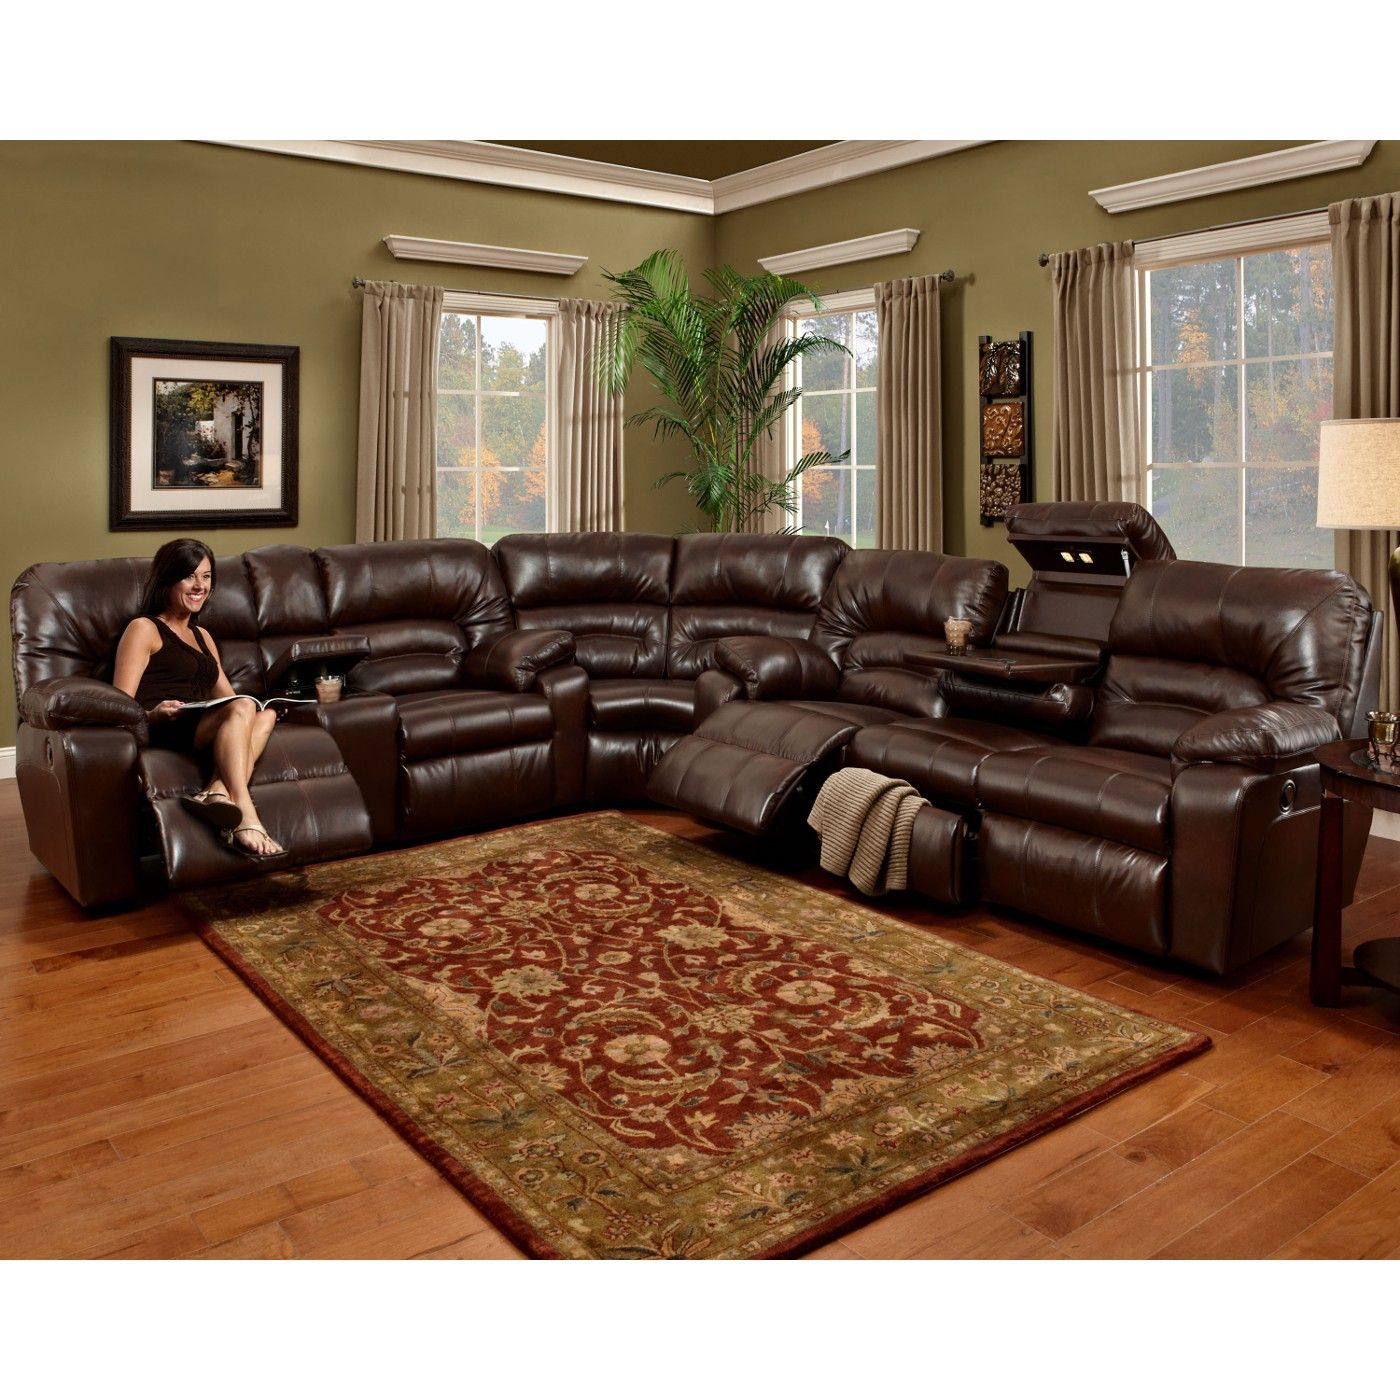 sofa awesome recliner leather rustic sectional minimalist design couch of your best sofas for home